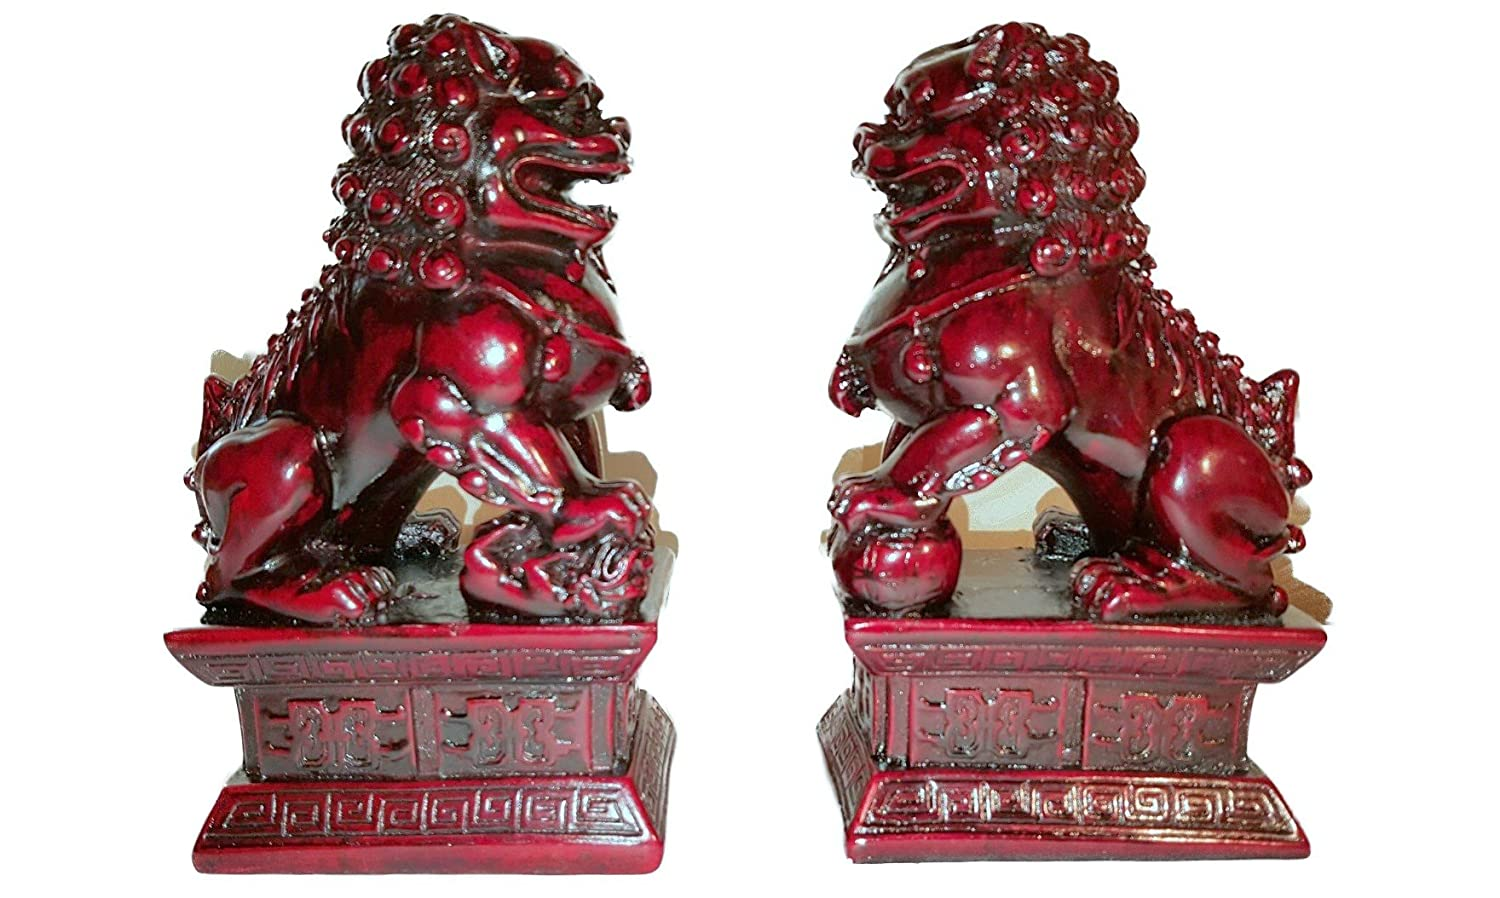 Foo Dogs Statues Granite Chinese Fu Temple Lions Amazon